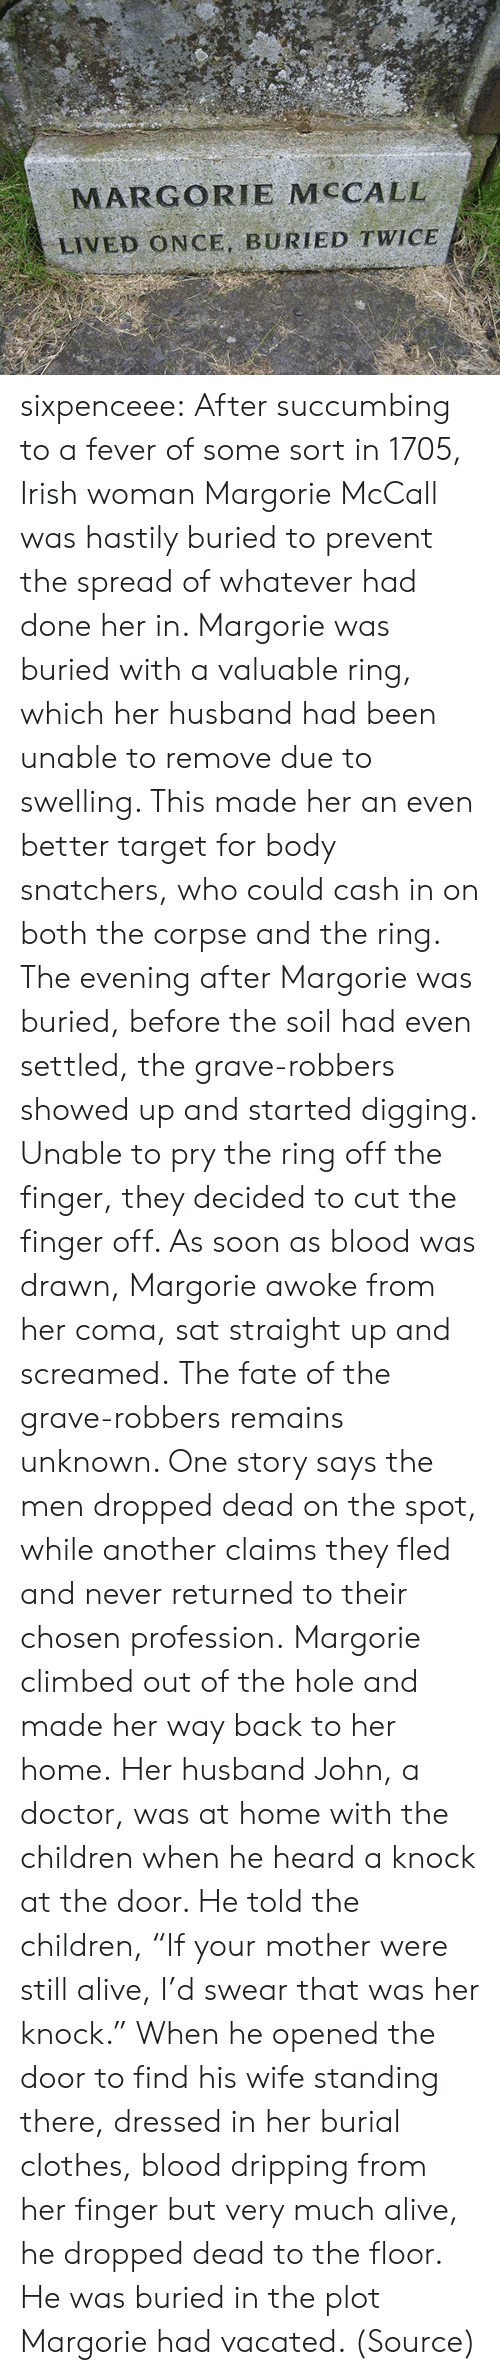 "The Ring: MARGORIE MCCALL  LIVED ONCE, BURIED TWICE sixpenceee:  After succumbing to a fever of some sort in 1705, Irish woman Margorie McCall was hastily buried to prevent the spread of whatever had done her in. Margorie was buried with a valuable ring, which her husband had been unable to remove due to swelling. This made her an even better target for body snatchers, who could cash in on both the corpse and the ring. The evening after Margorie was buried, before the soil had even settled, the grave-robbers showed up and started digging. Unable to pry the ring off the finger, they decided to cut the finger off. As soon as blood was drawn, Margorie awoke from her coma, sat straight up and screamed. The fate of the grave-robbers remains unknown. One story says the men dropped dead on the spot, while another claims they fled and never returned to their chosen profession. Margorie climbed out of the hole and made her way back to her home. Her husband John, a doctor, was at home with the children when he heard a knock at the door. He told the children, ""If your mother were still alive, I'd swear that was her knock."" When he opened the door to find his wife standing there, dressed in her burial clothes, blood dripping from her finger but very much alive, he dropped dead to the floor. He was buried in the plot Margorie had vacated. (Source)"